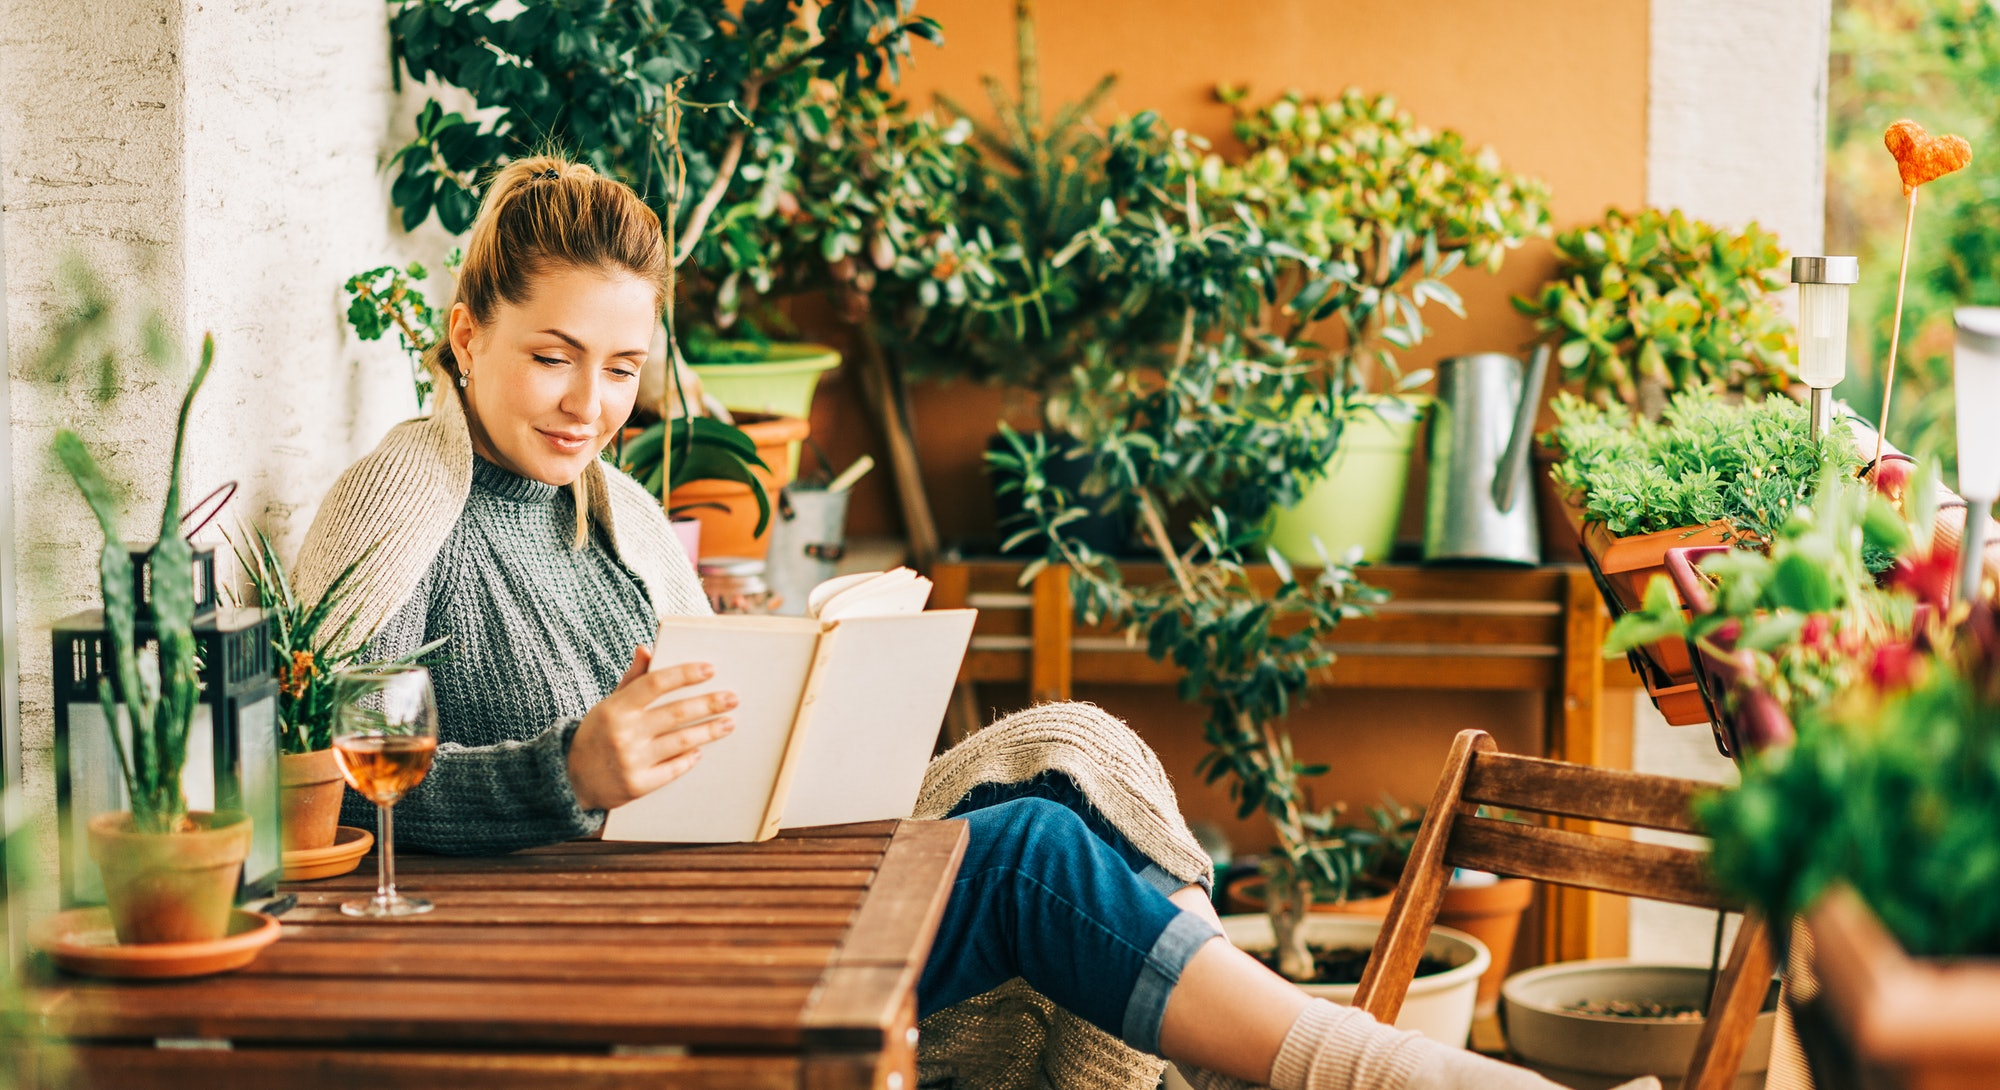 A blonde woman on a patio sits surrounded by plants, reading a book.